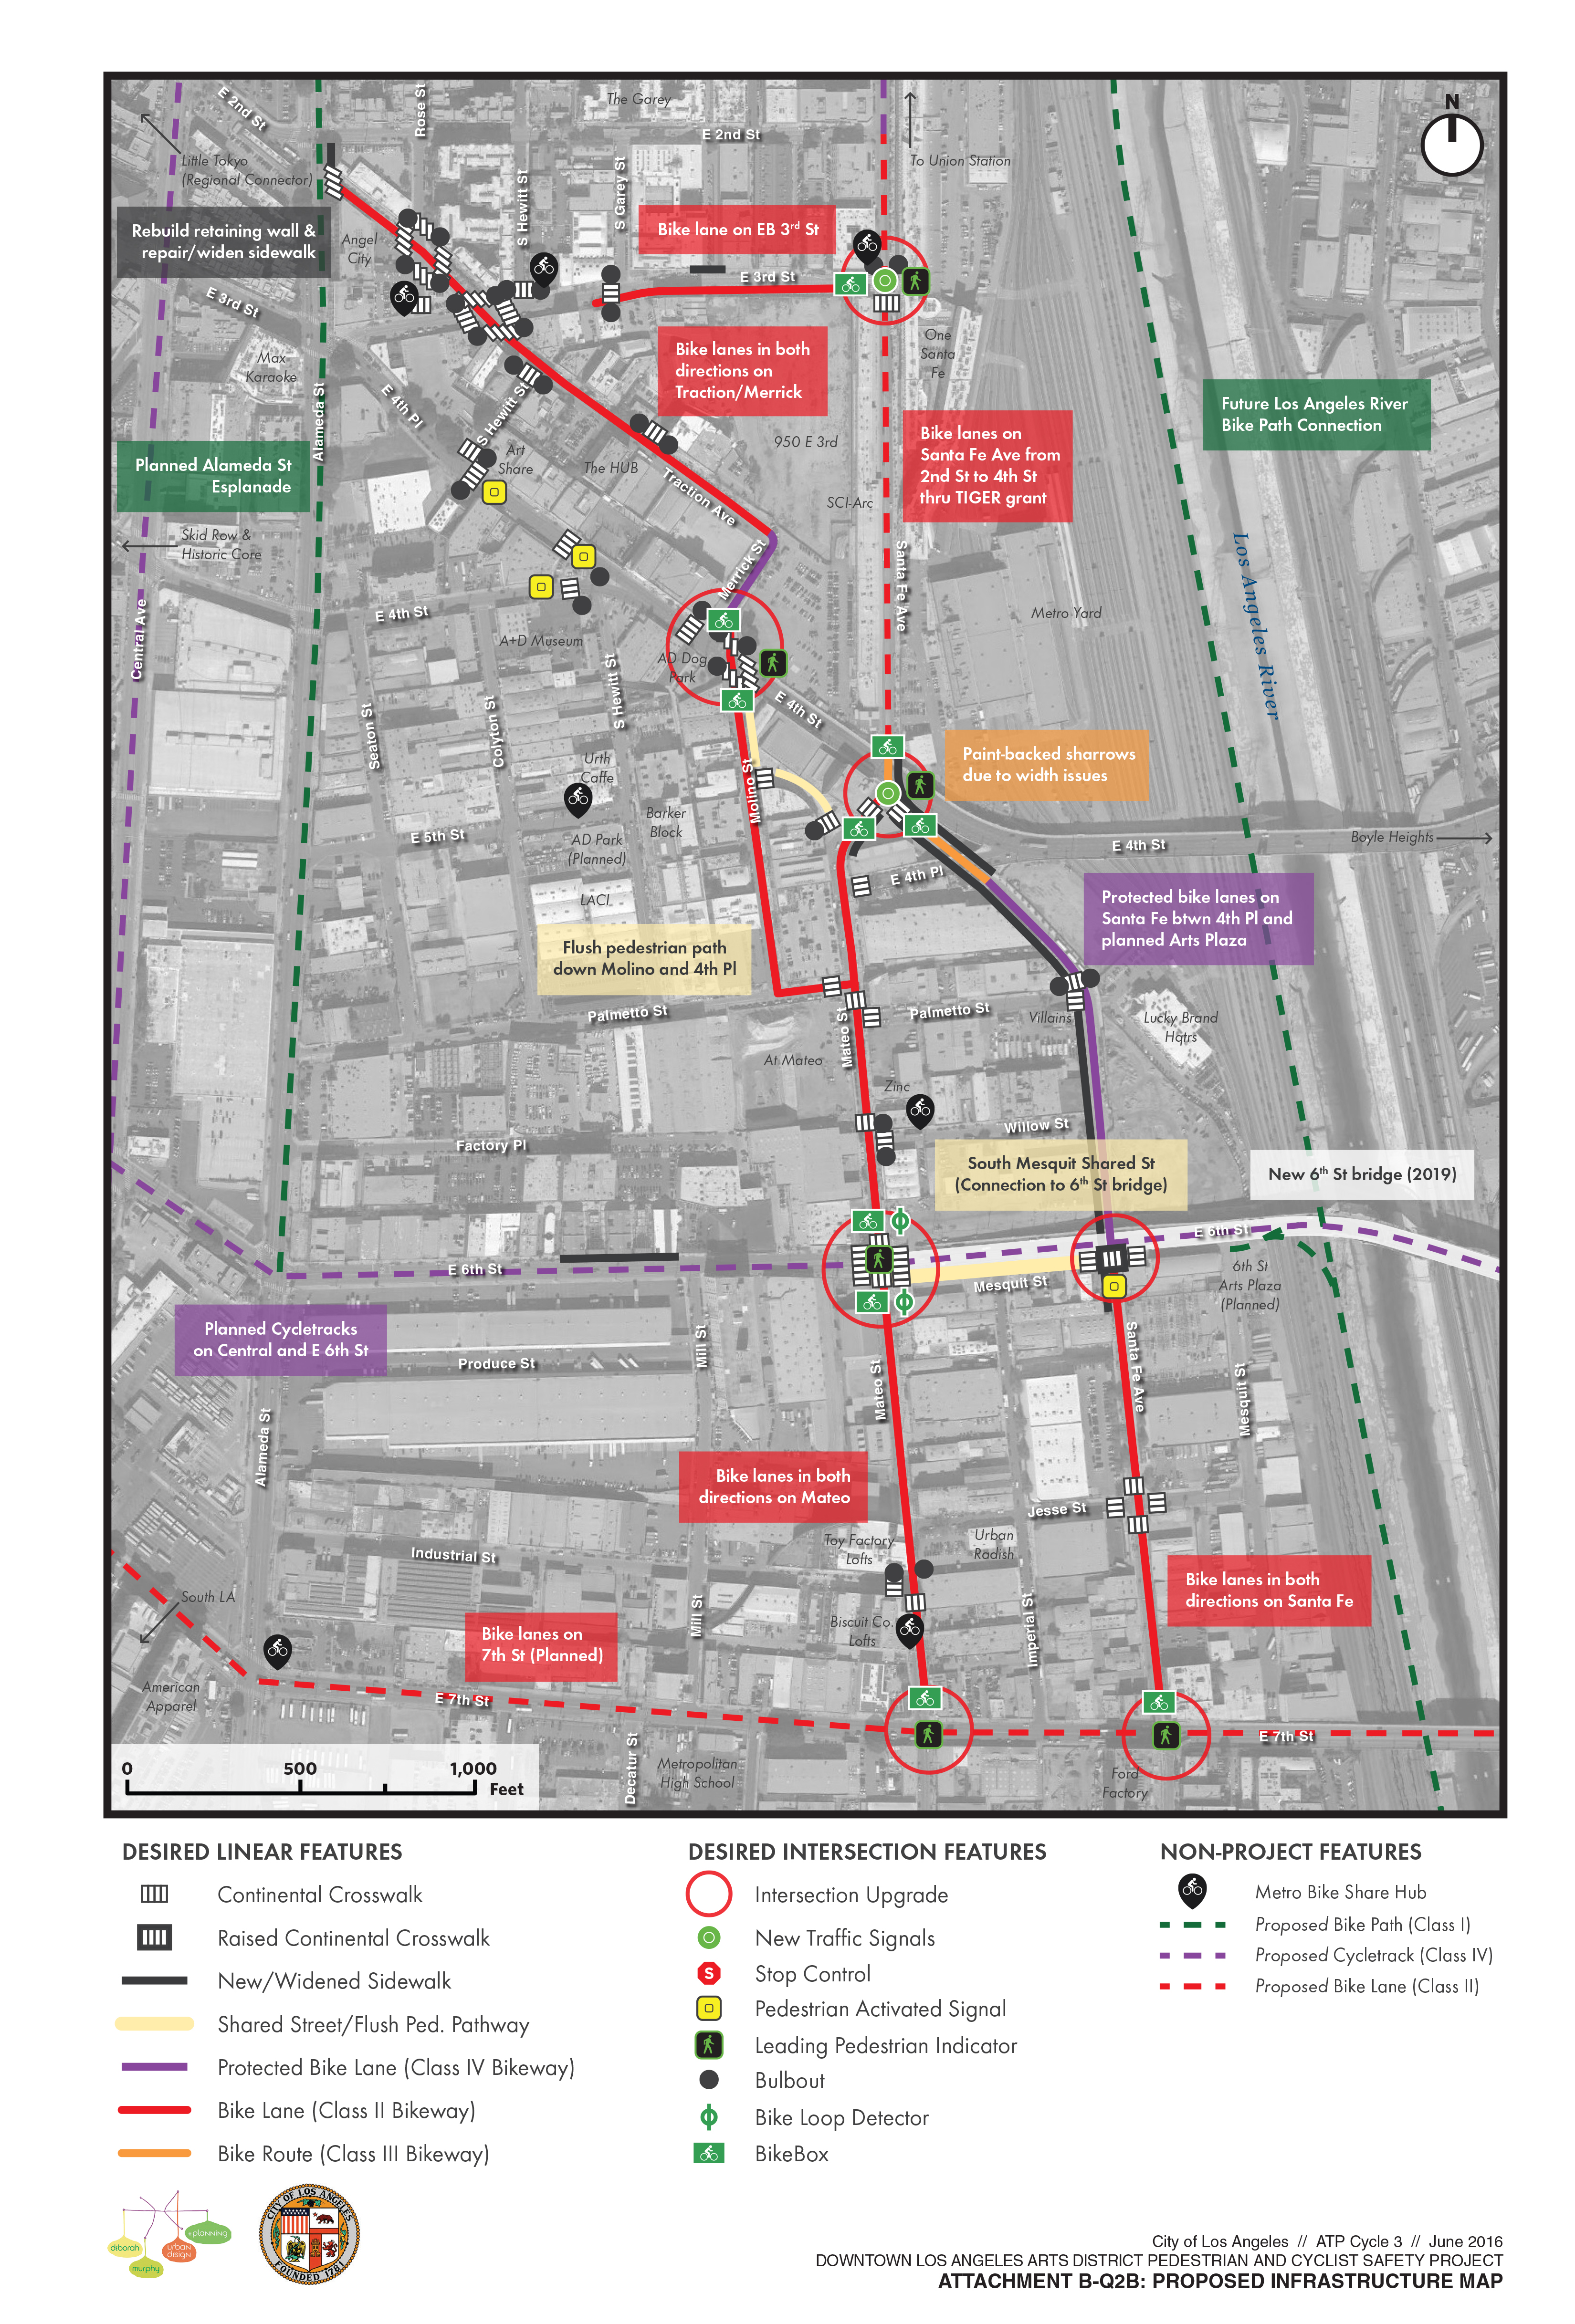 Arts District awarded $15M to spend on bike- and pedestrian-friendly upgrades